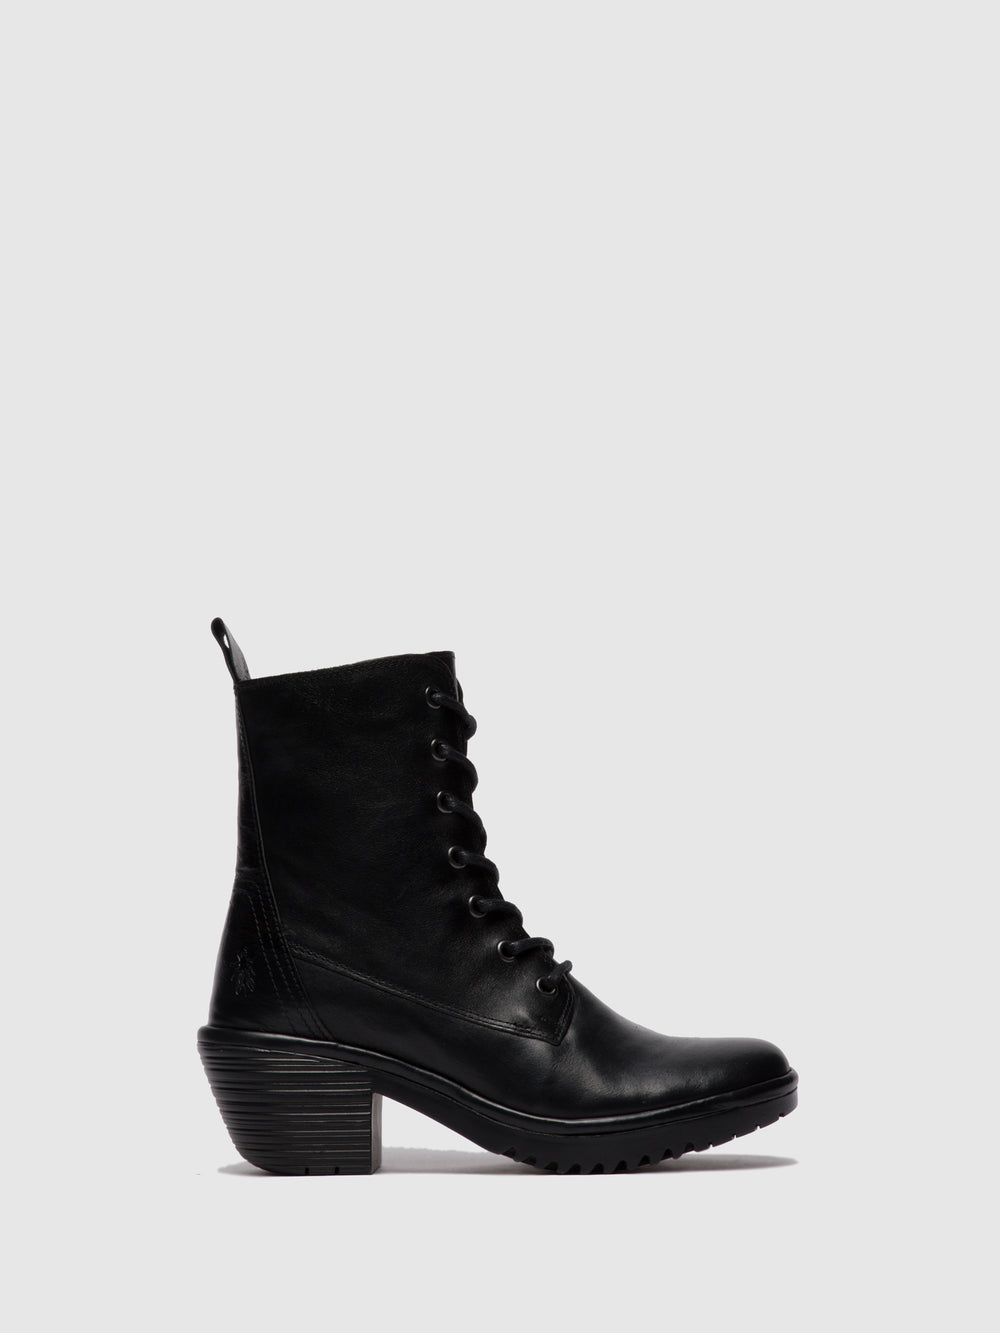 Lace-up Ankle Boots WEBE244FLY COLUMBIA BLACK